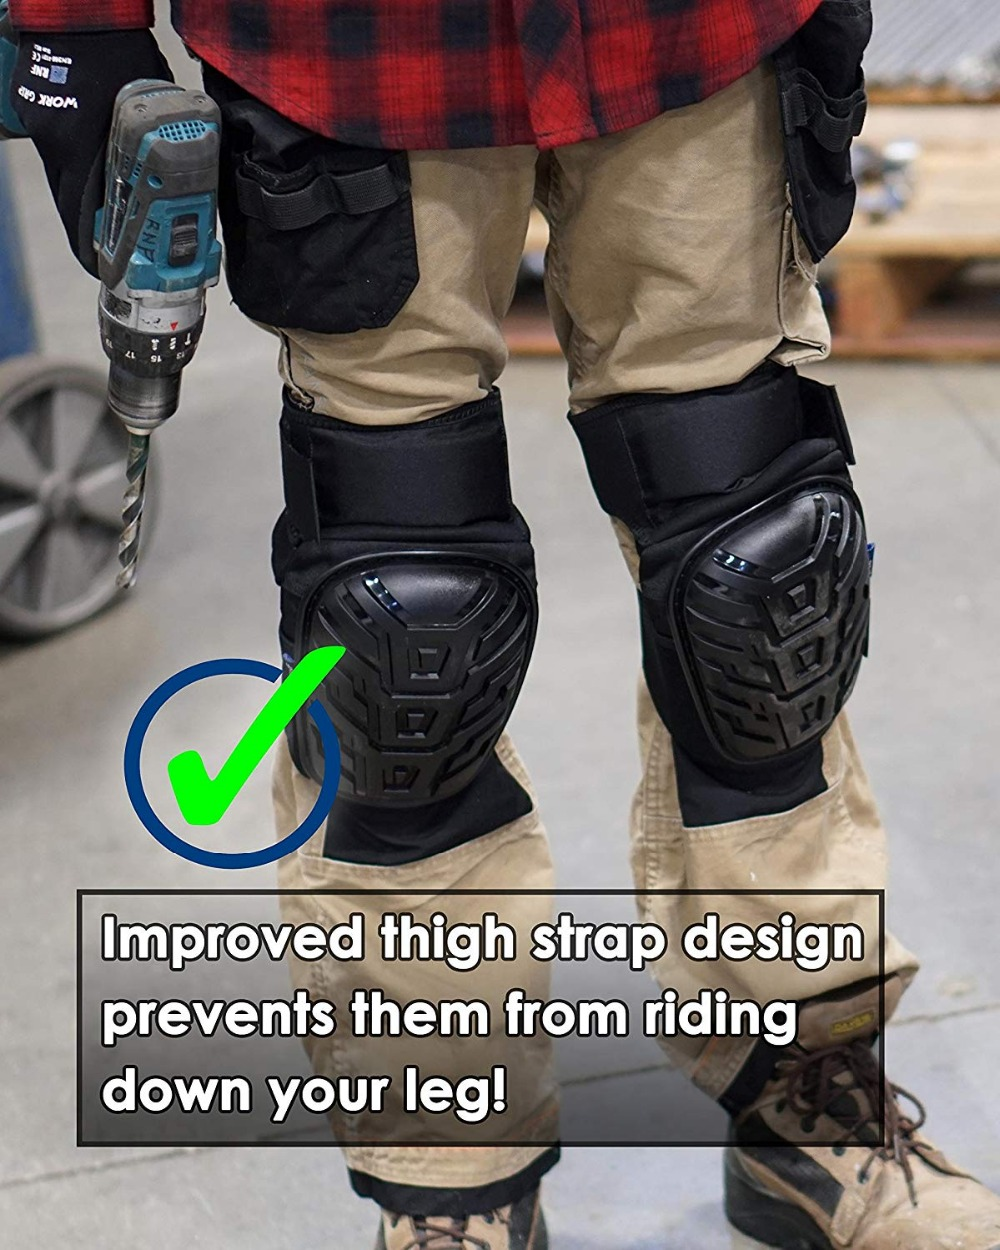 Professional Most Comfortable Gardening Knee Pads with Adjustable Strap for Work Flooring Construction and Gardening